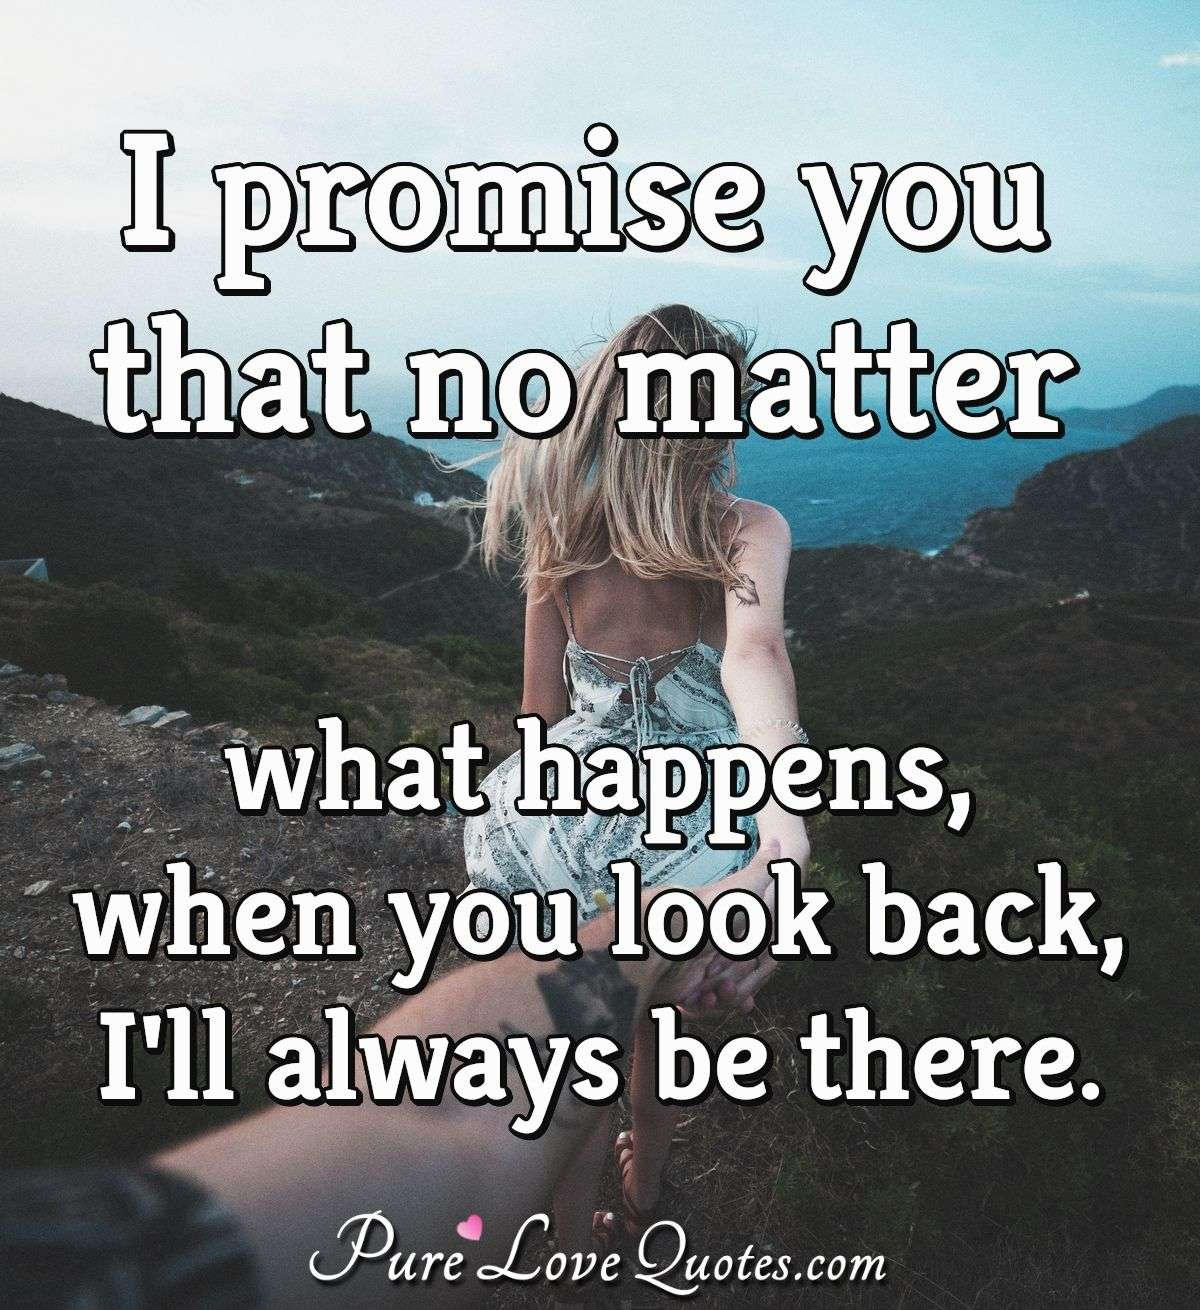 I promise you that no matter what happens, when you look back, I'll always be there. - Anonymous